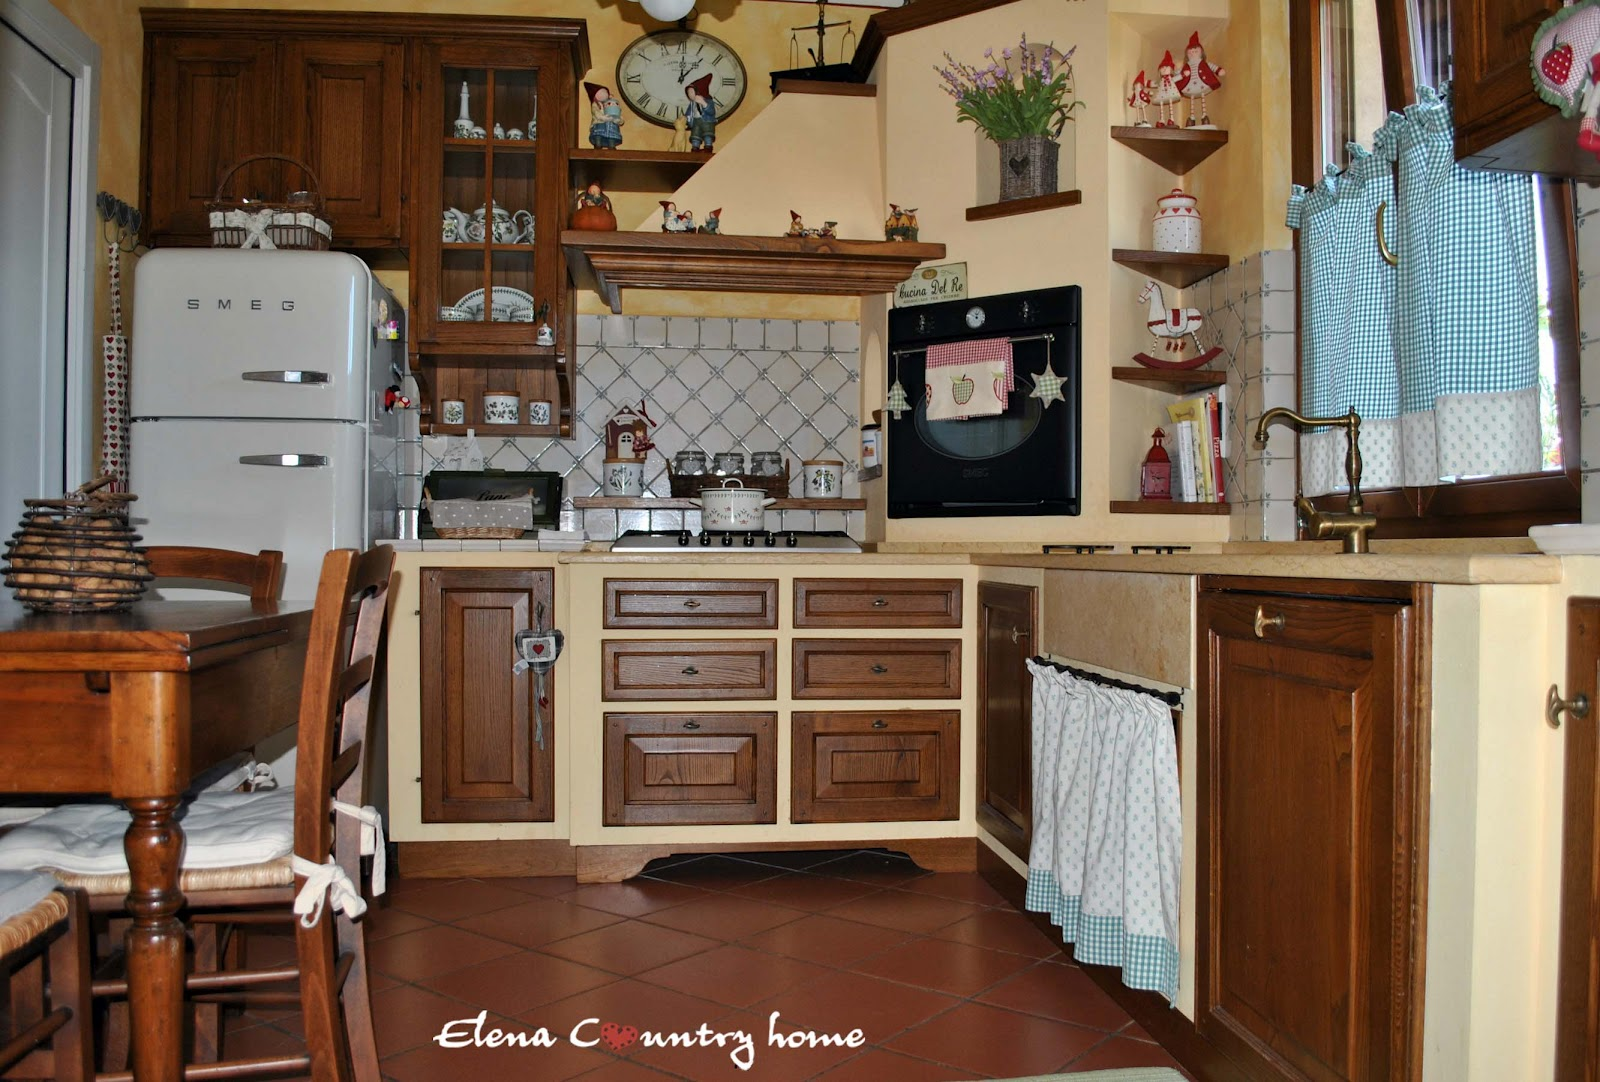 Cucine In Stile Provenzale. Good Gallery Of Tende Stile Provenzale ...